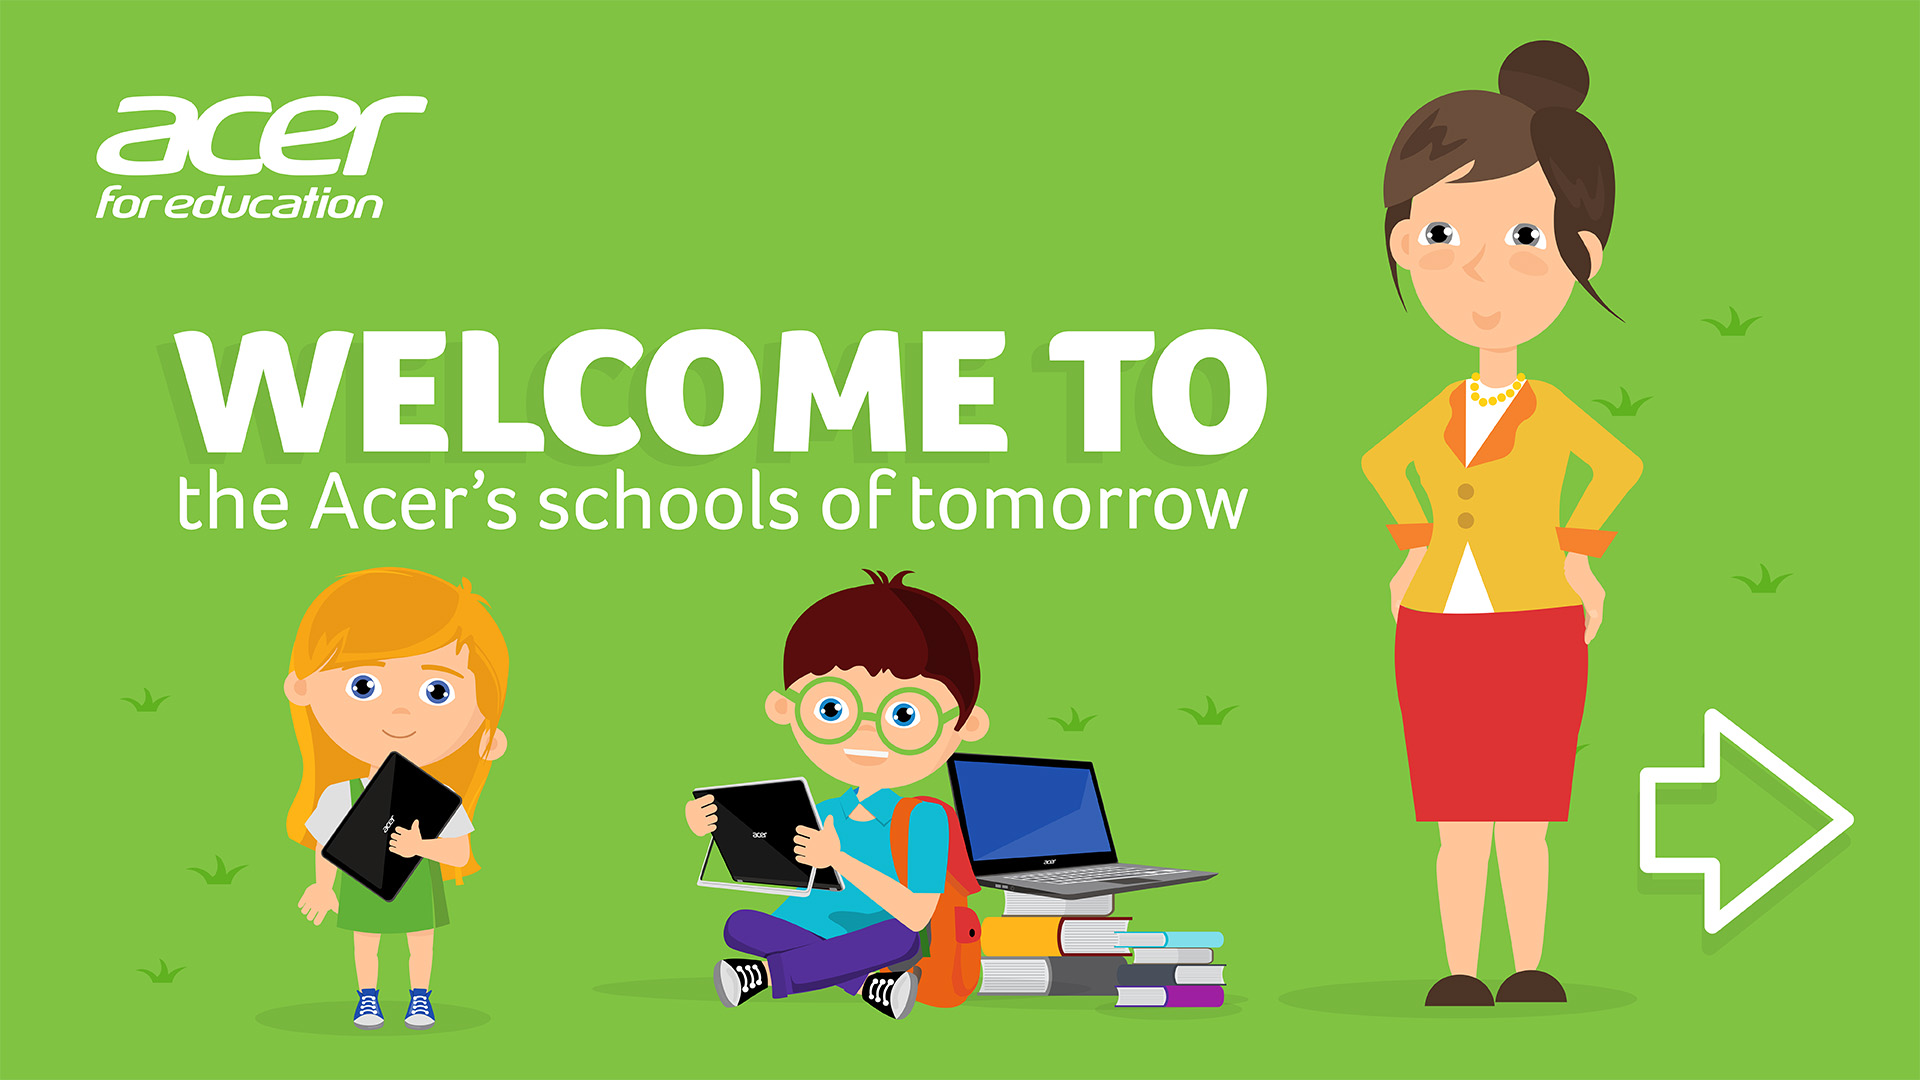 Acer Education